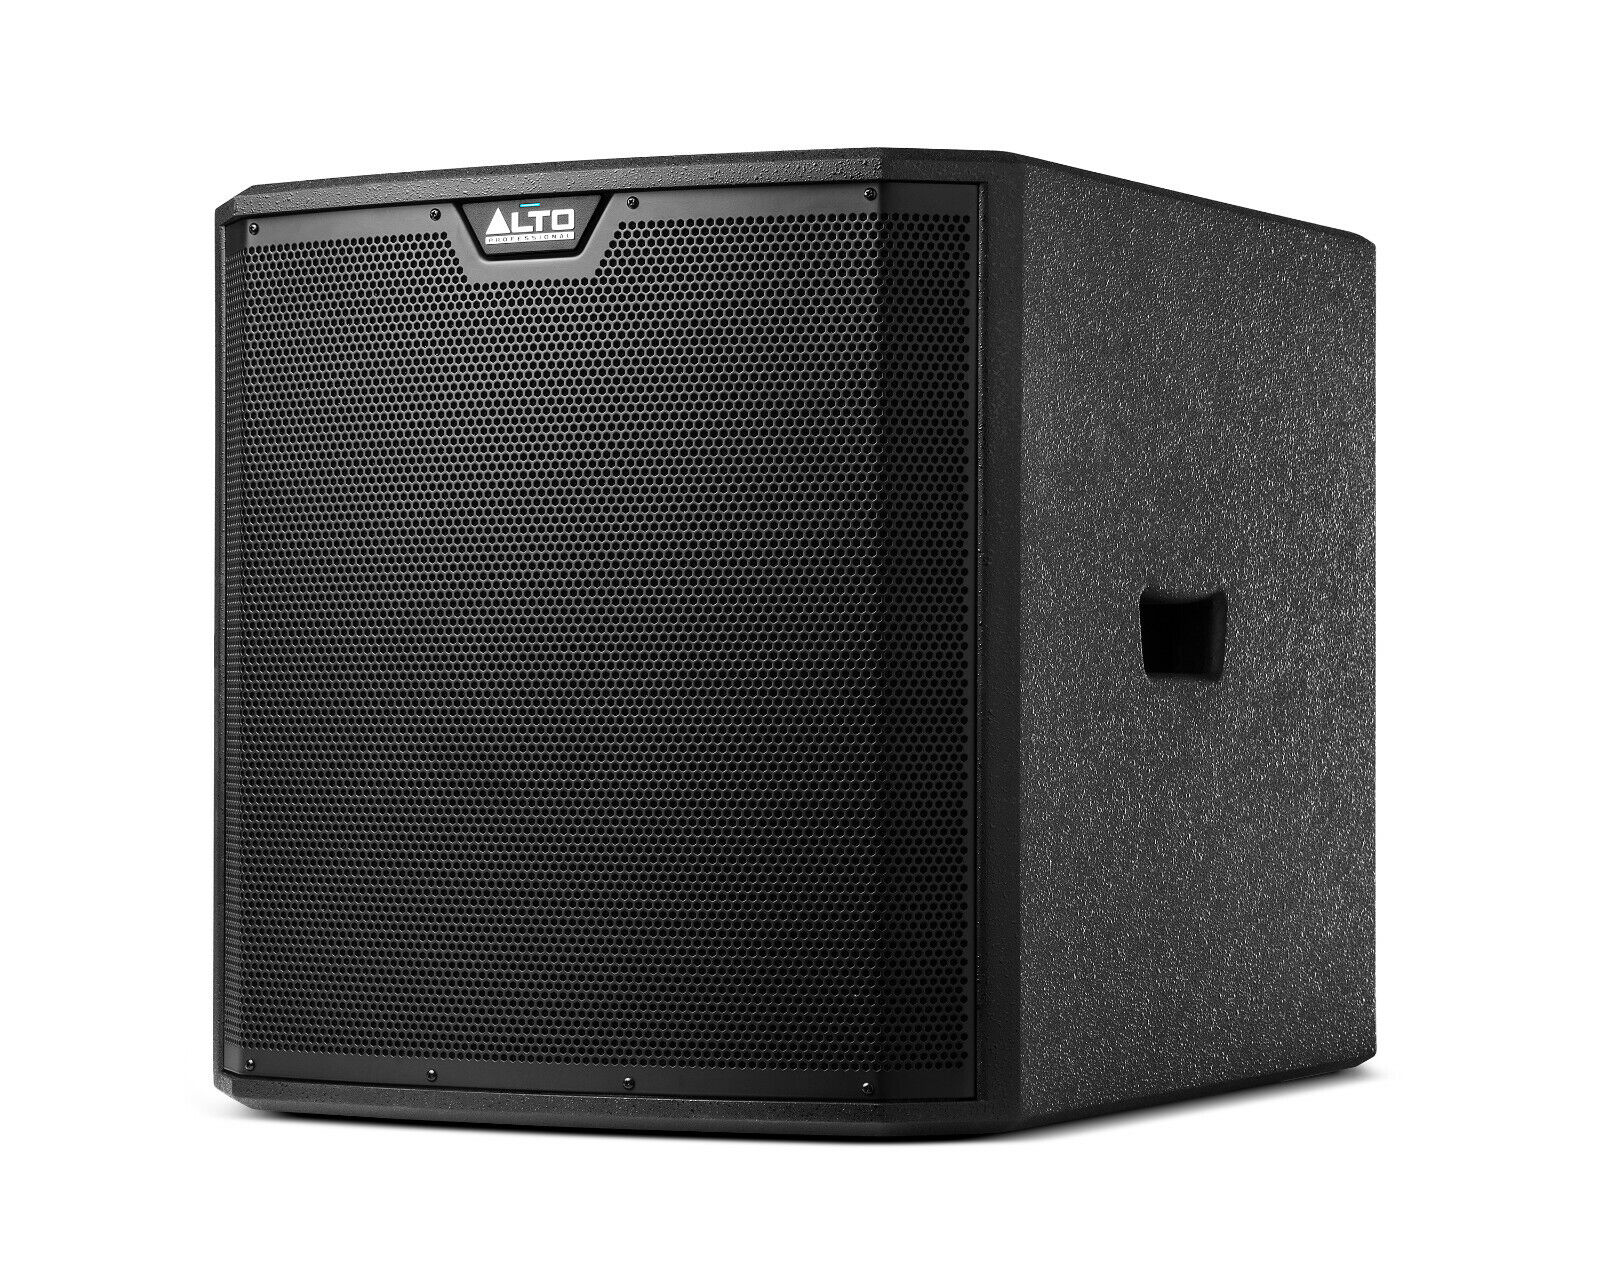 Alto Professional TS315S 2000-Watt 15-Inch Powered Subwoofer . Buy it now for 569.05